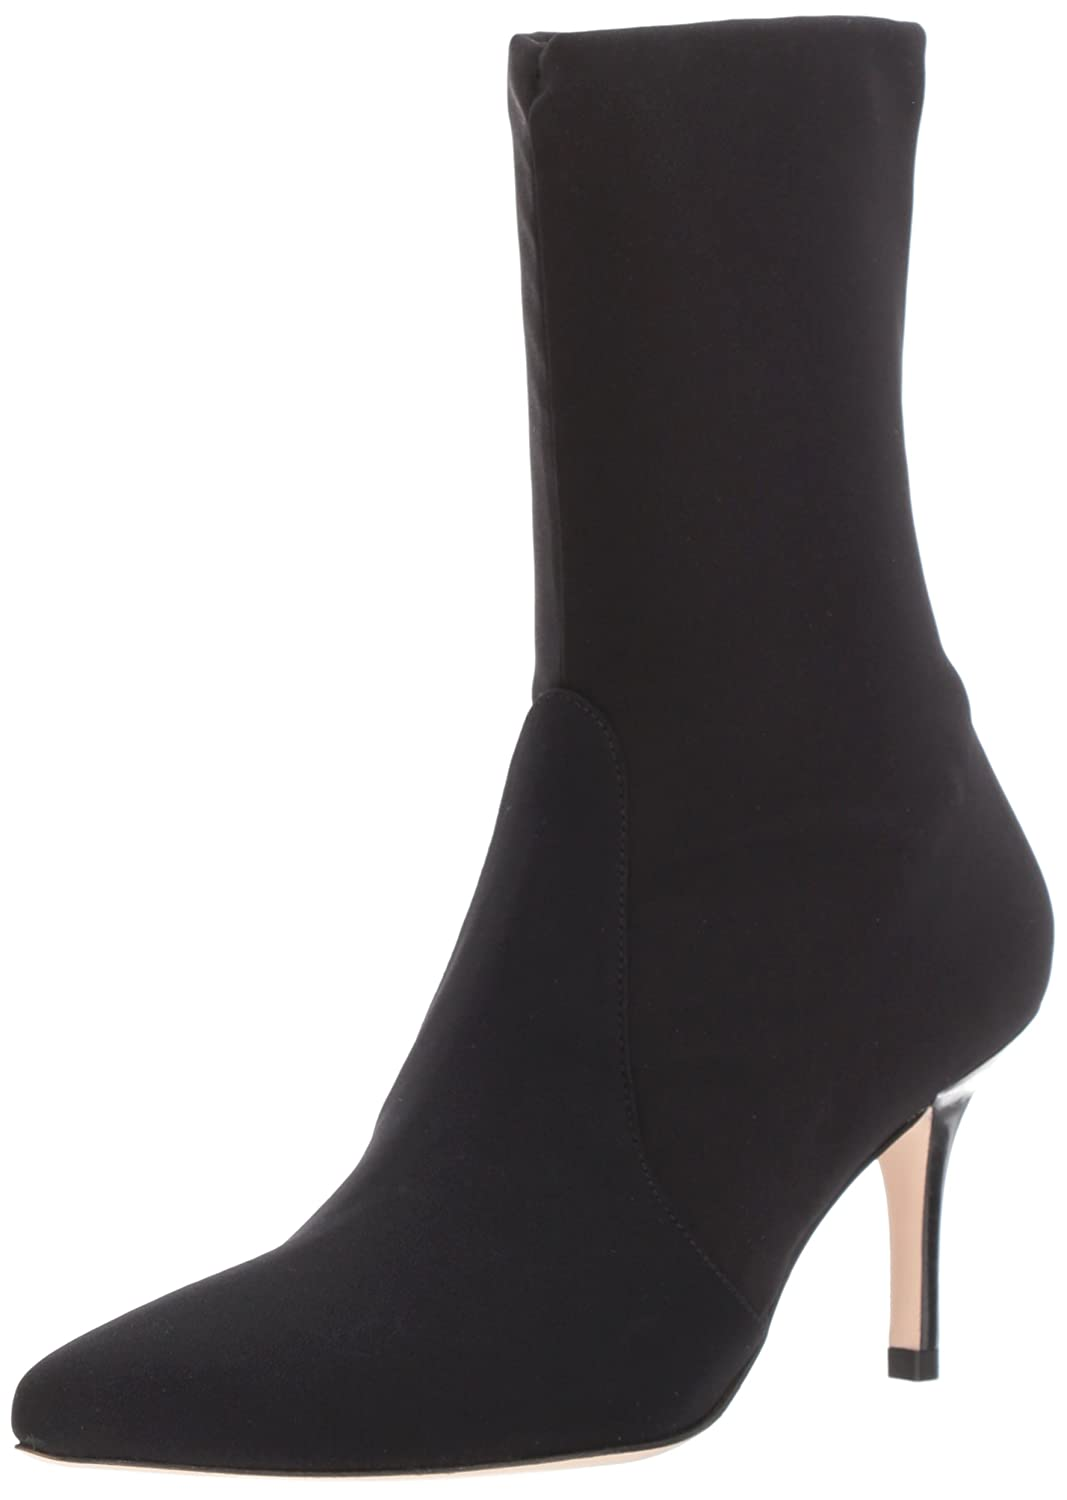 Stuart Weitzman Women's Axiom Ankle Boot B073C624TB 4.5 B(M) US|Black Micro